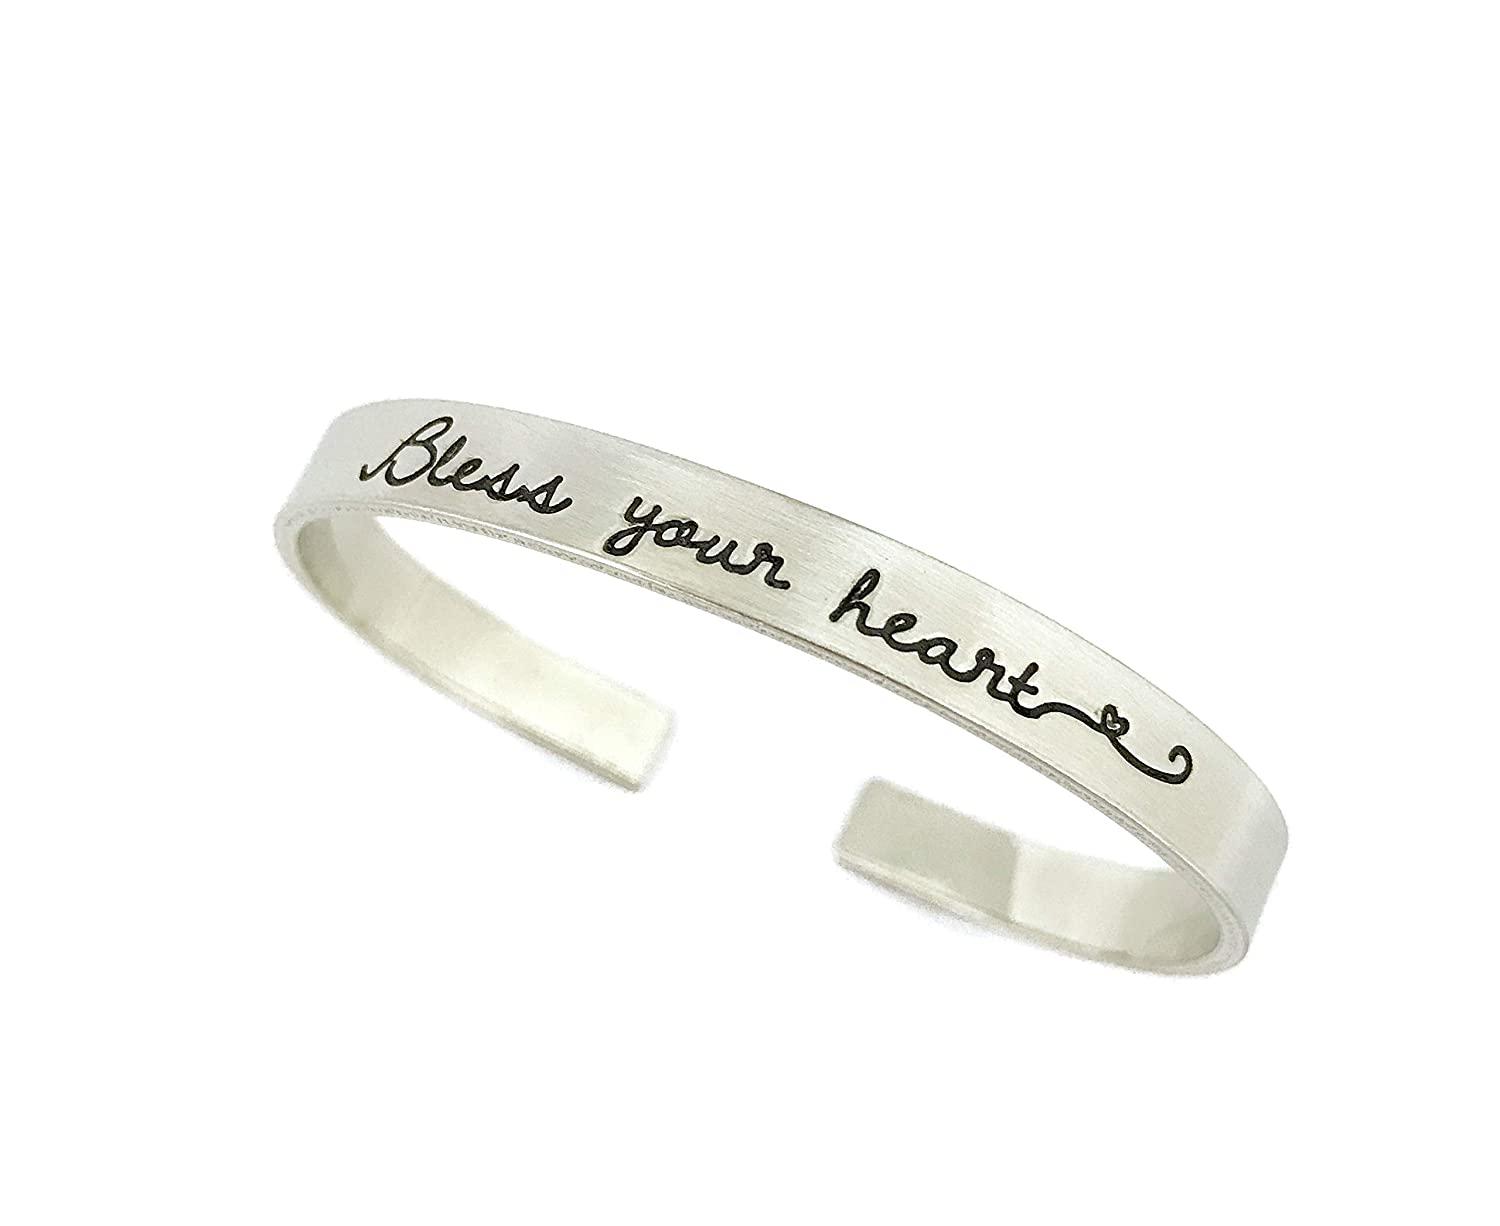 Bless Your Heart - Southern Max 50% OFF Pewter Thick Bracelet Jewelry Al sold out. Cuff